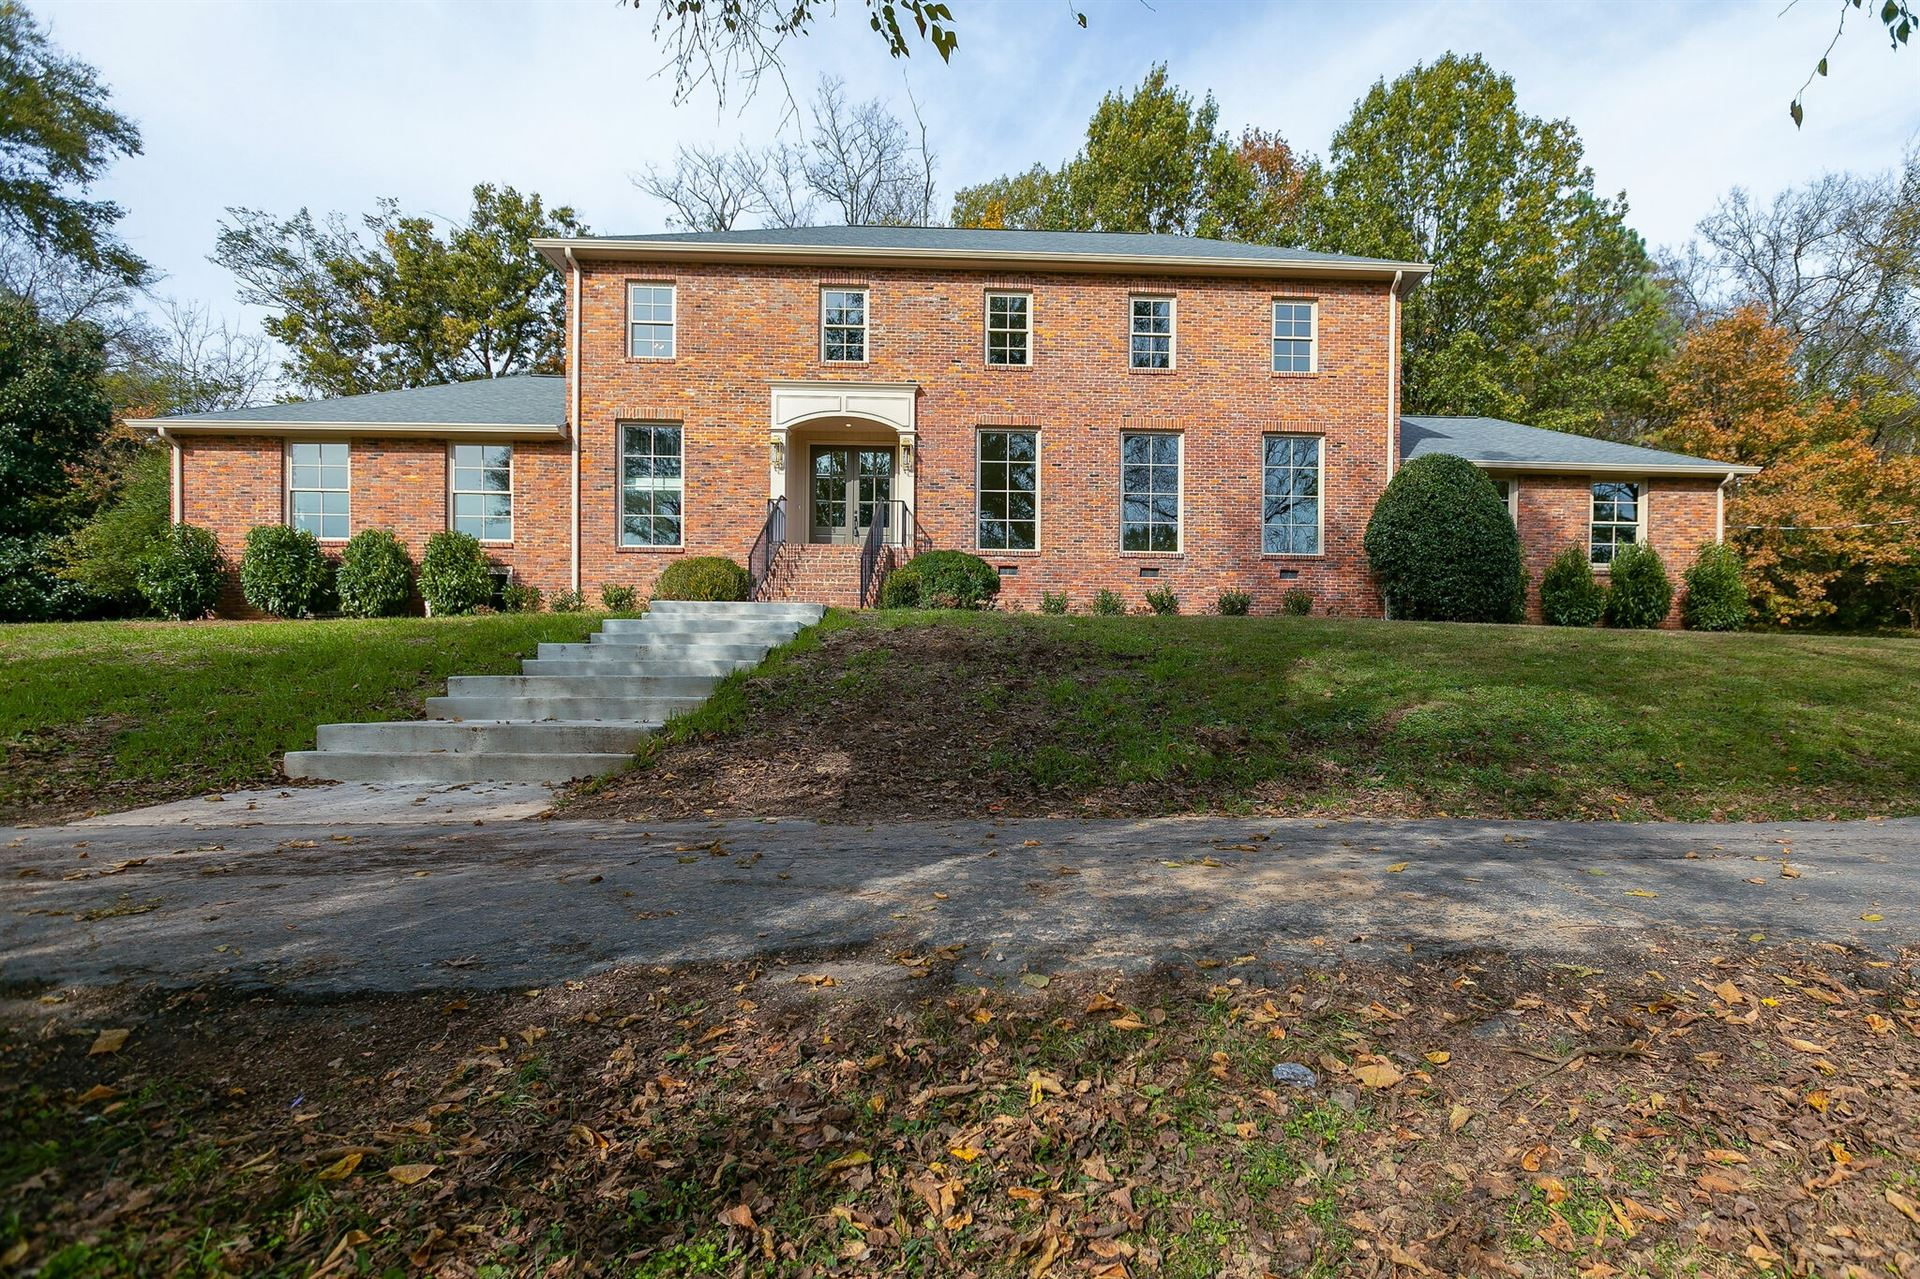 Photo of 1600 Tynewood Dr, Nashville, TN 37215 (MLS # 2204936)